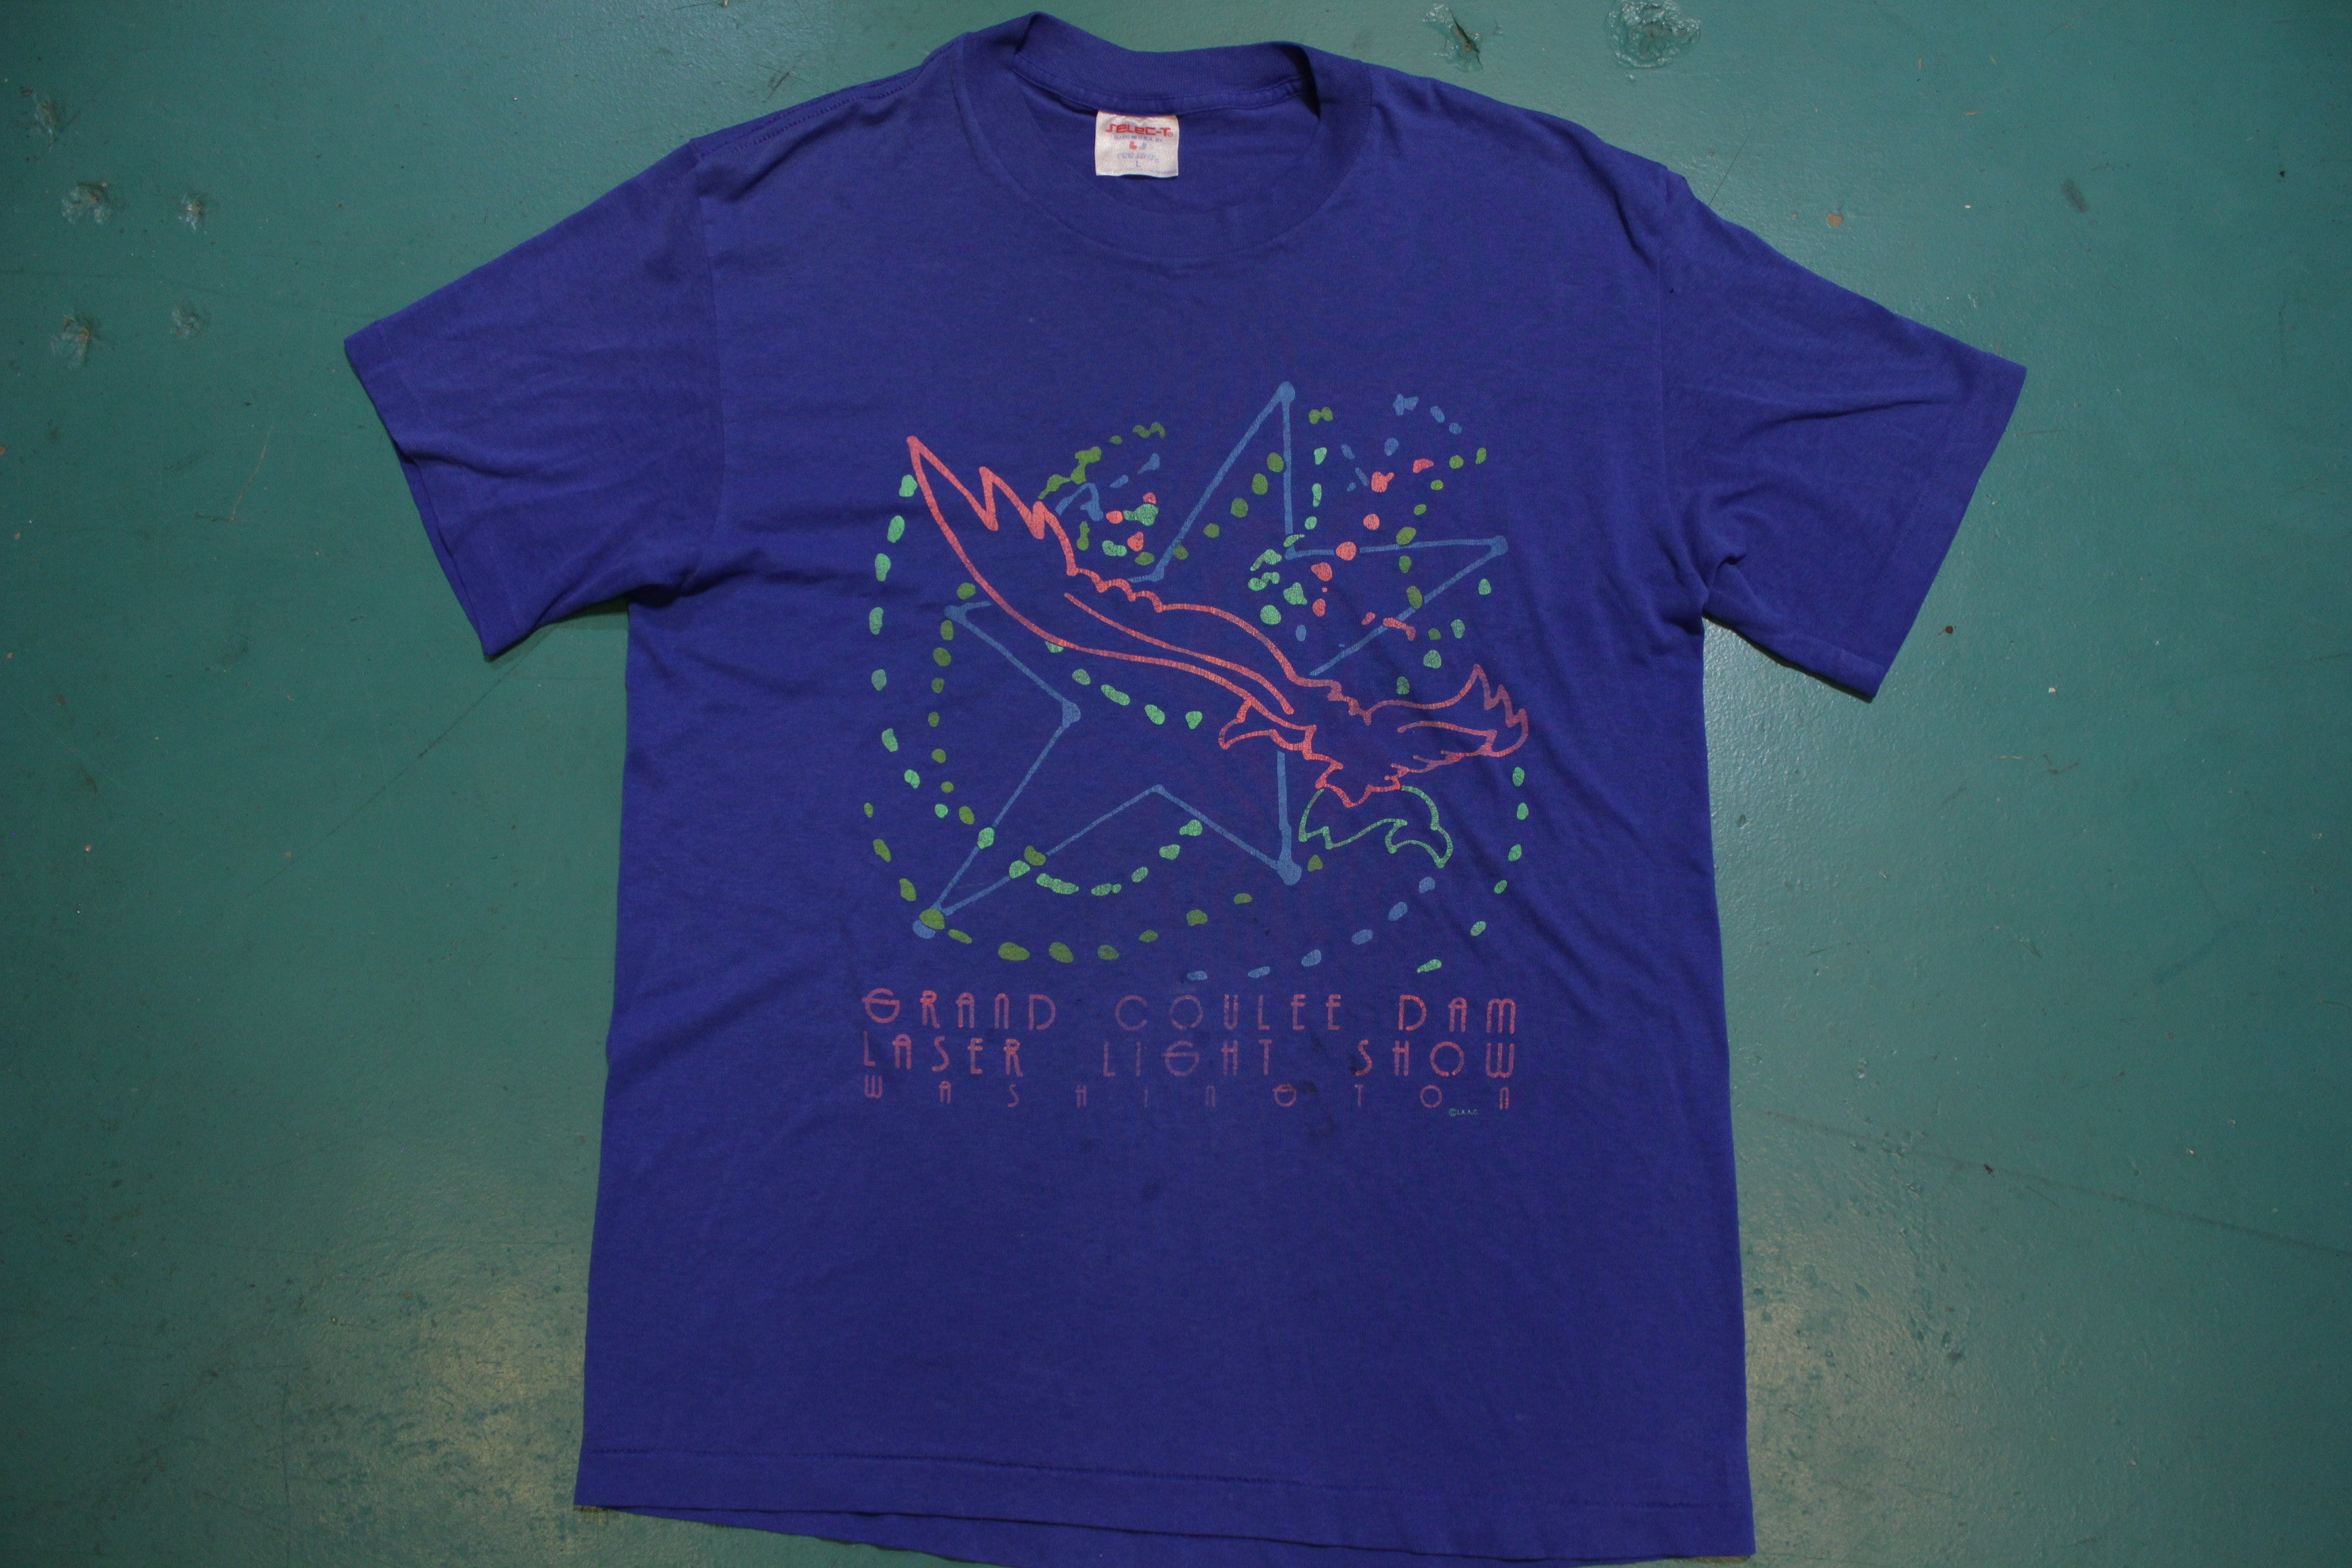 Grand Coulee Dam Laser Light Show Washington Distressed USA Single Stitch 80's T-Shirt